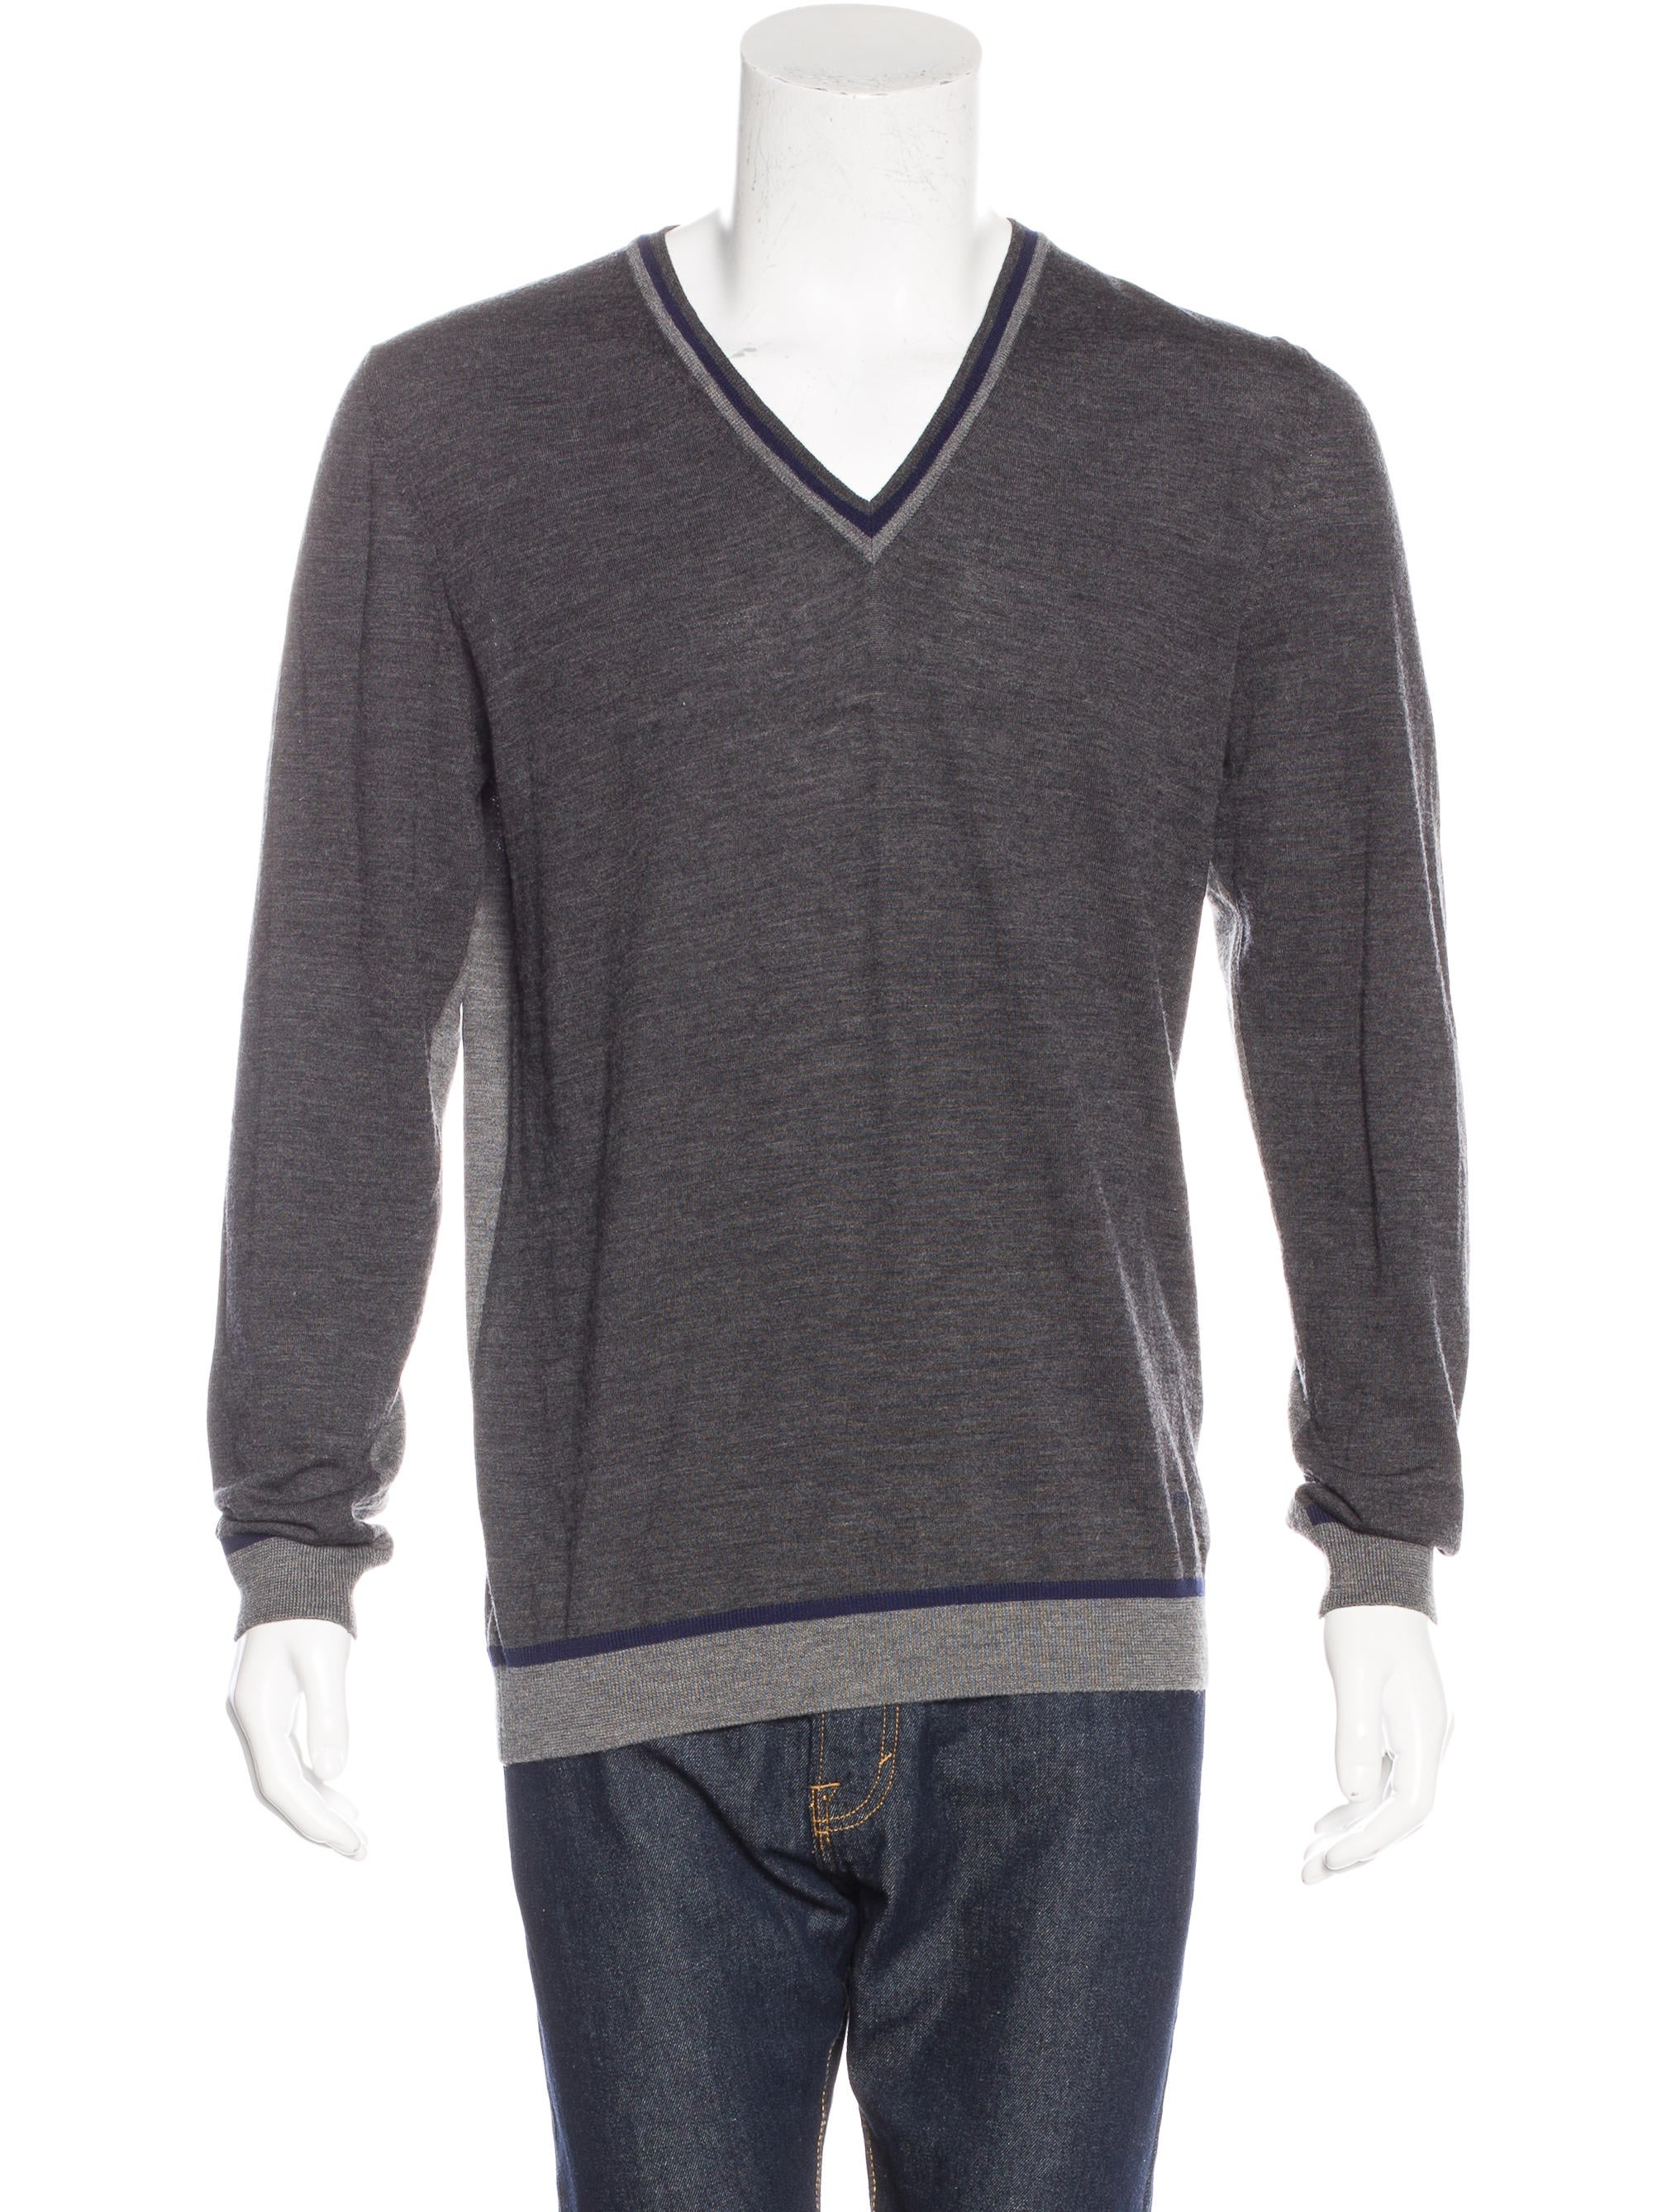 Gucci Merino Wool V-Neck Sweater - Clothing